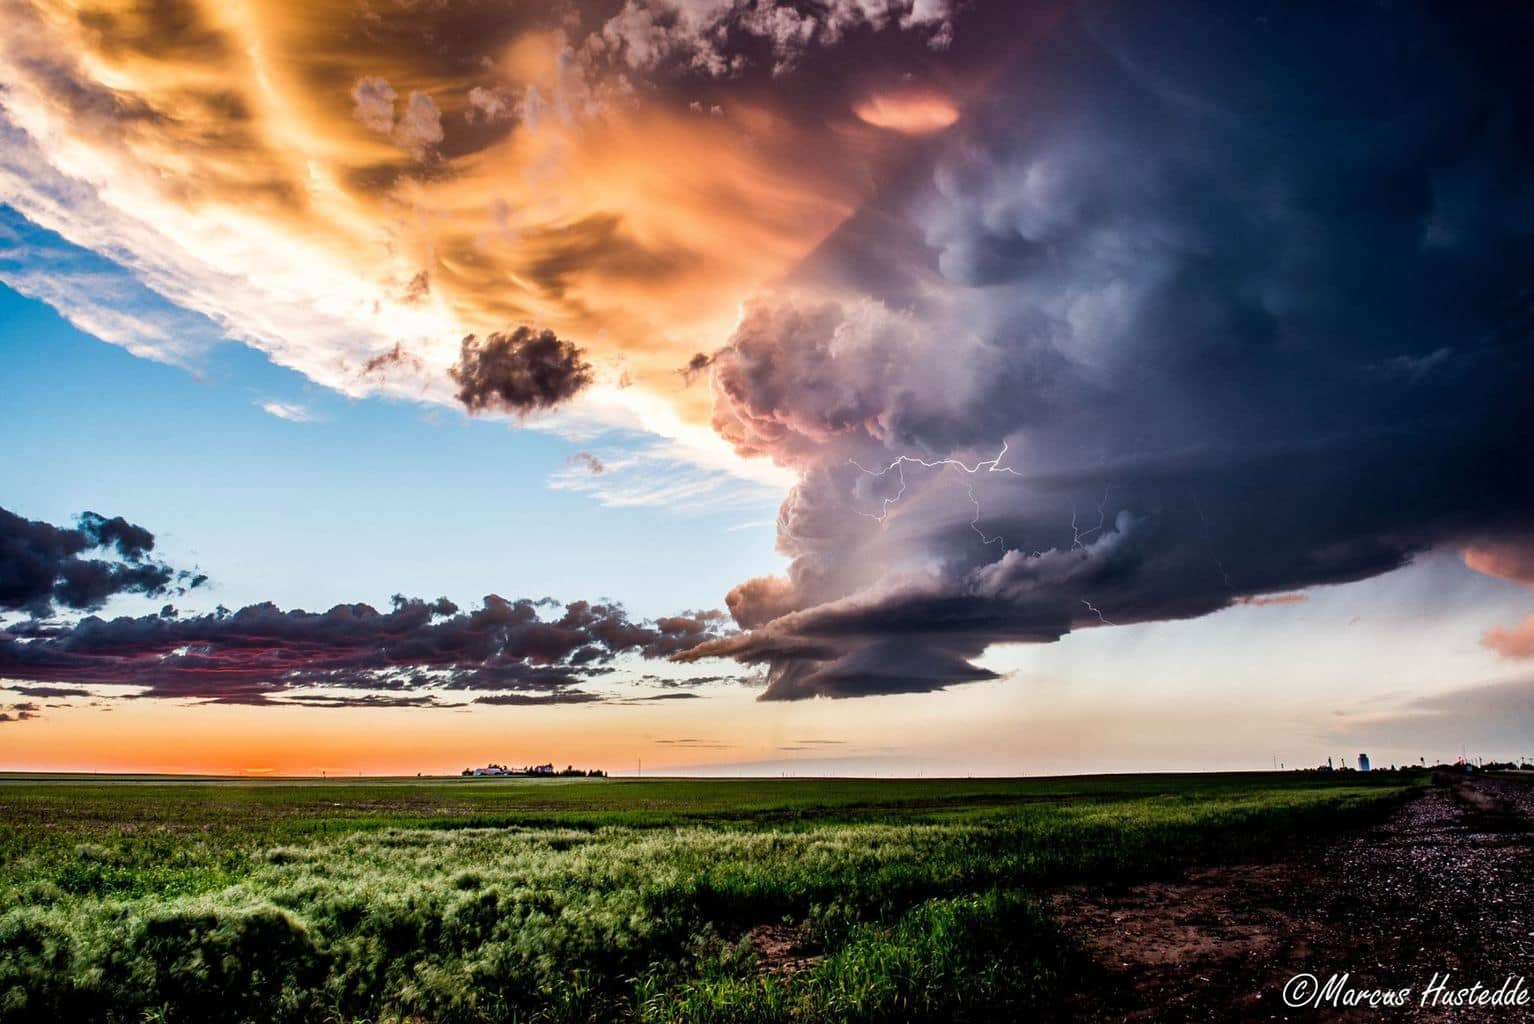 Low precipitation supercell at sunset just south of Dalton, NE on 6-2-15 with some intracloud lightning.